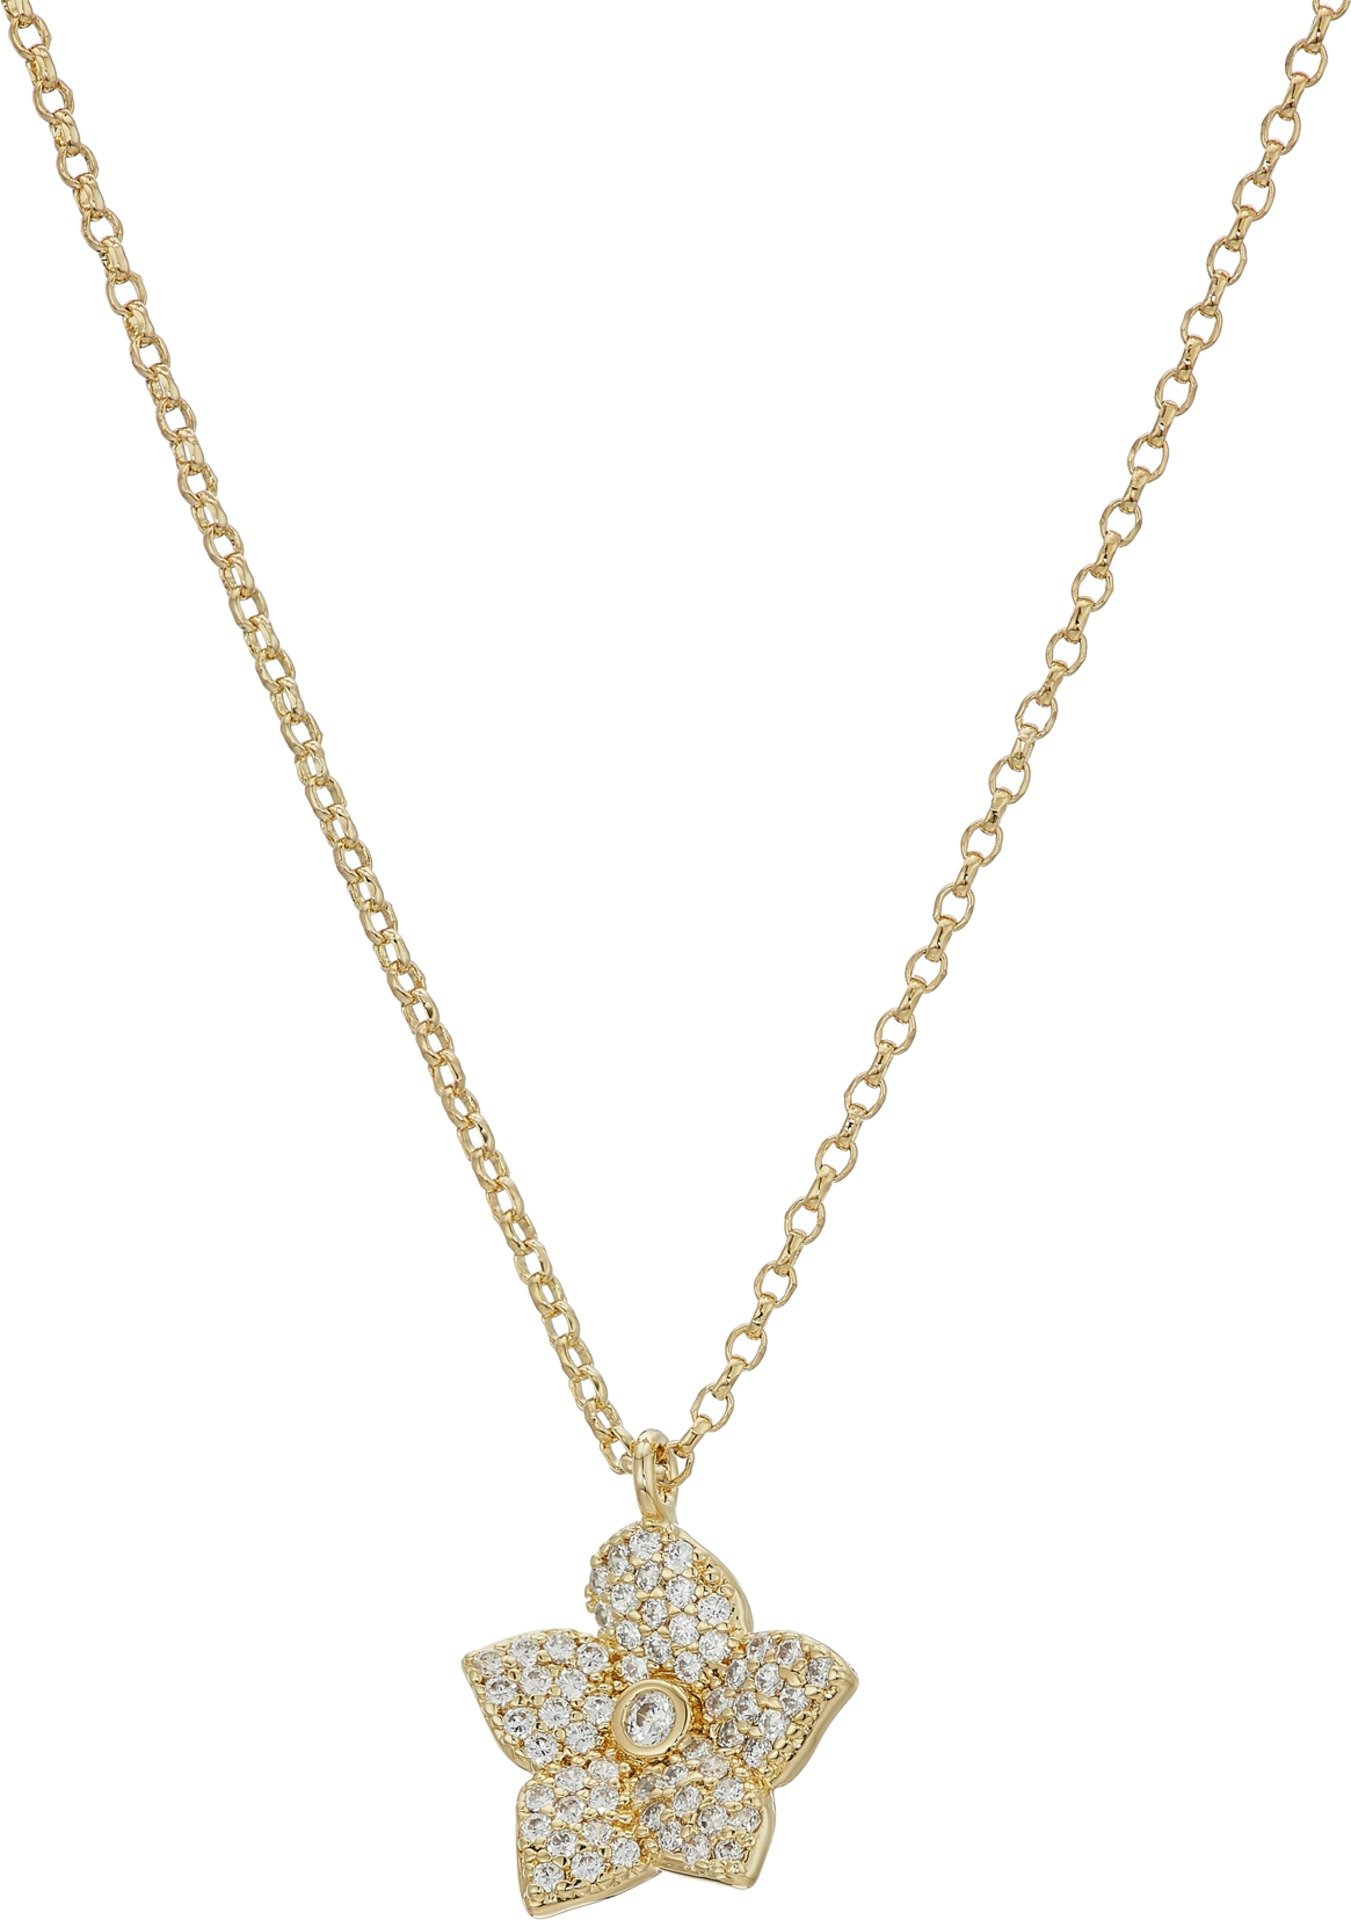 Kate Spade New York Women's Blooming Pave Bloom Mini Pendant Necklace Clear/Gold One Size